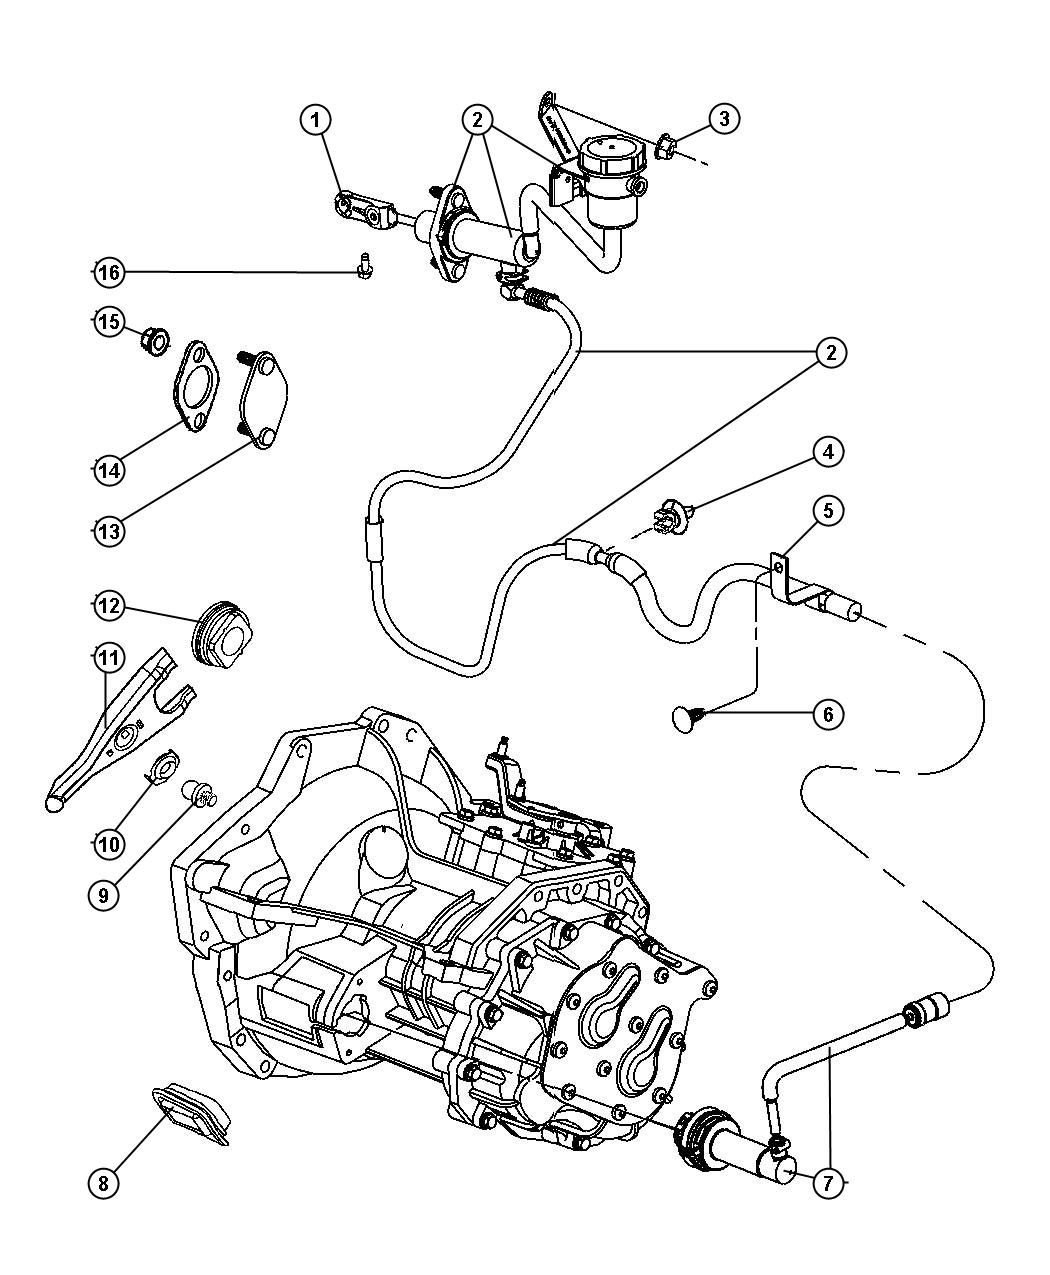 2001 dodge neon pcm wiring diagram